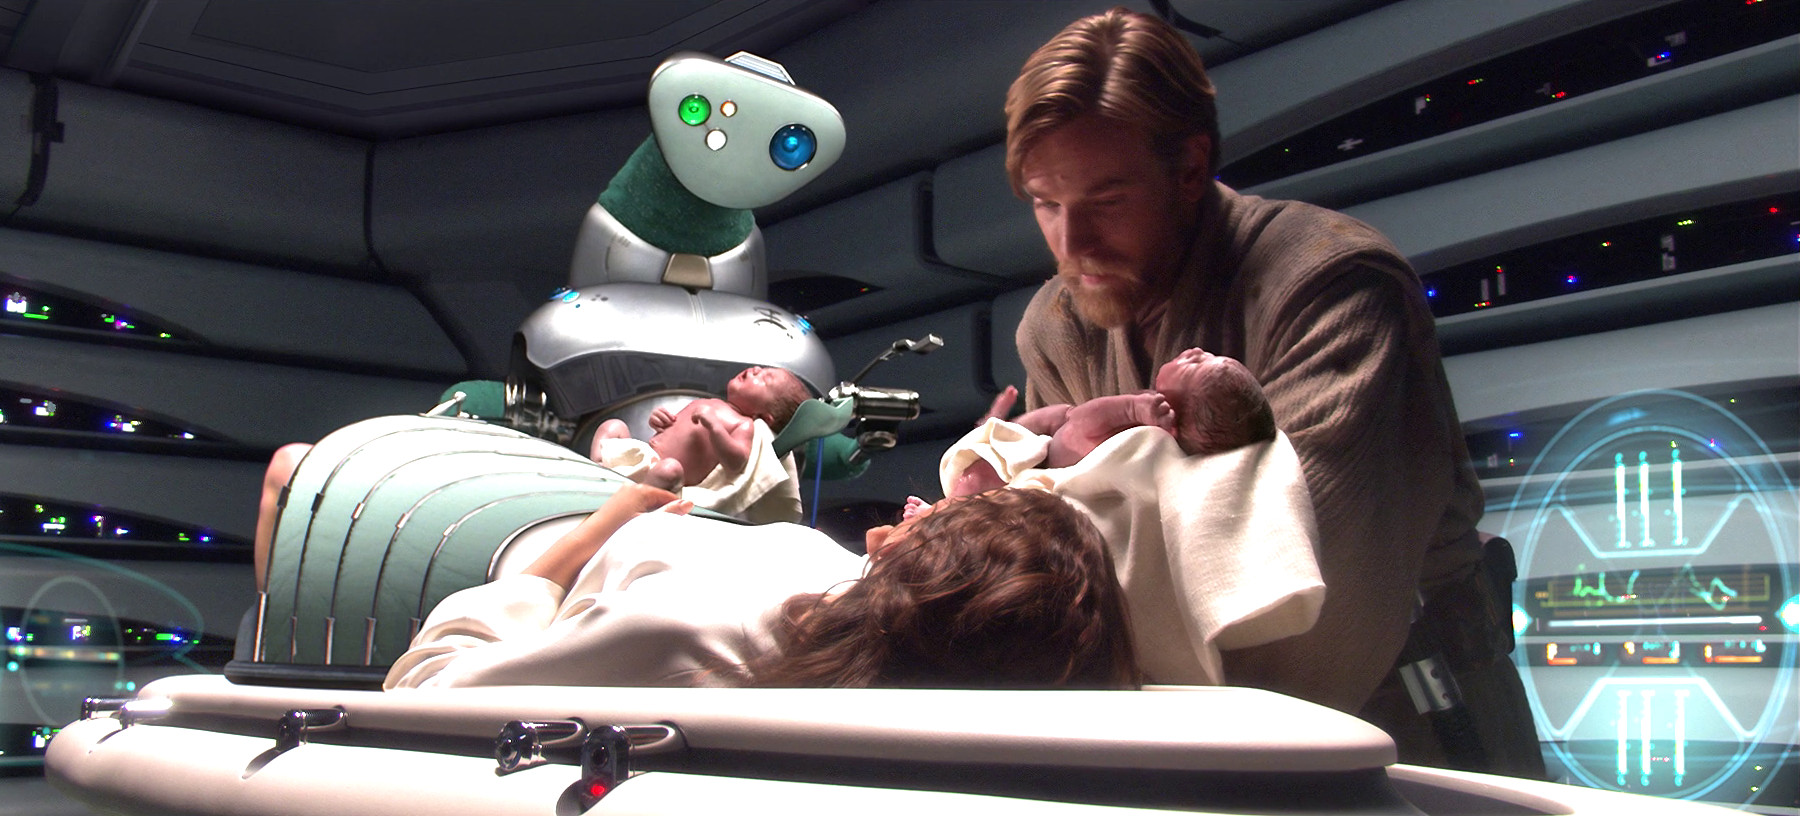 Midwife droid